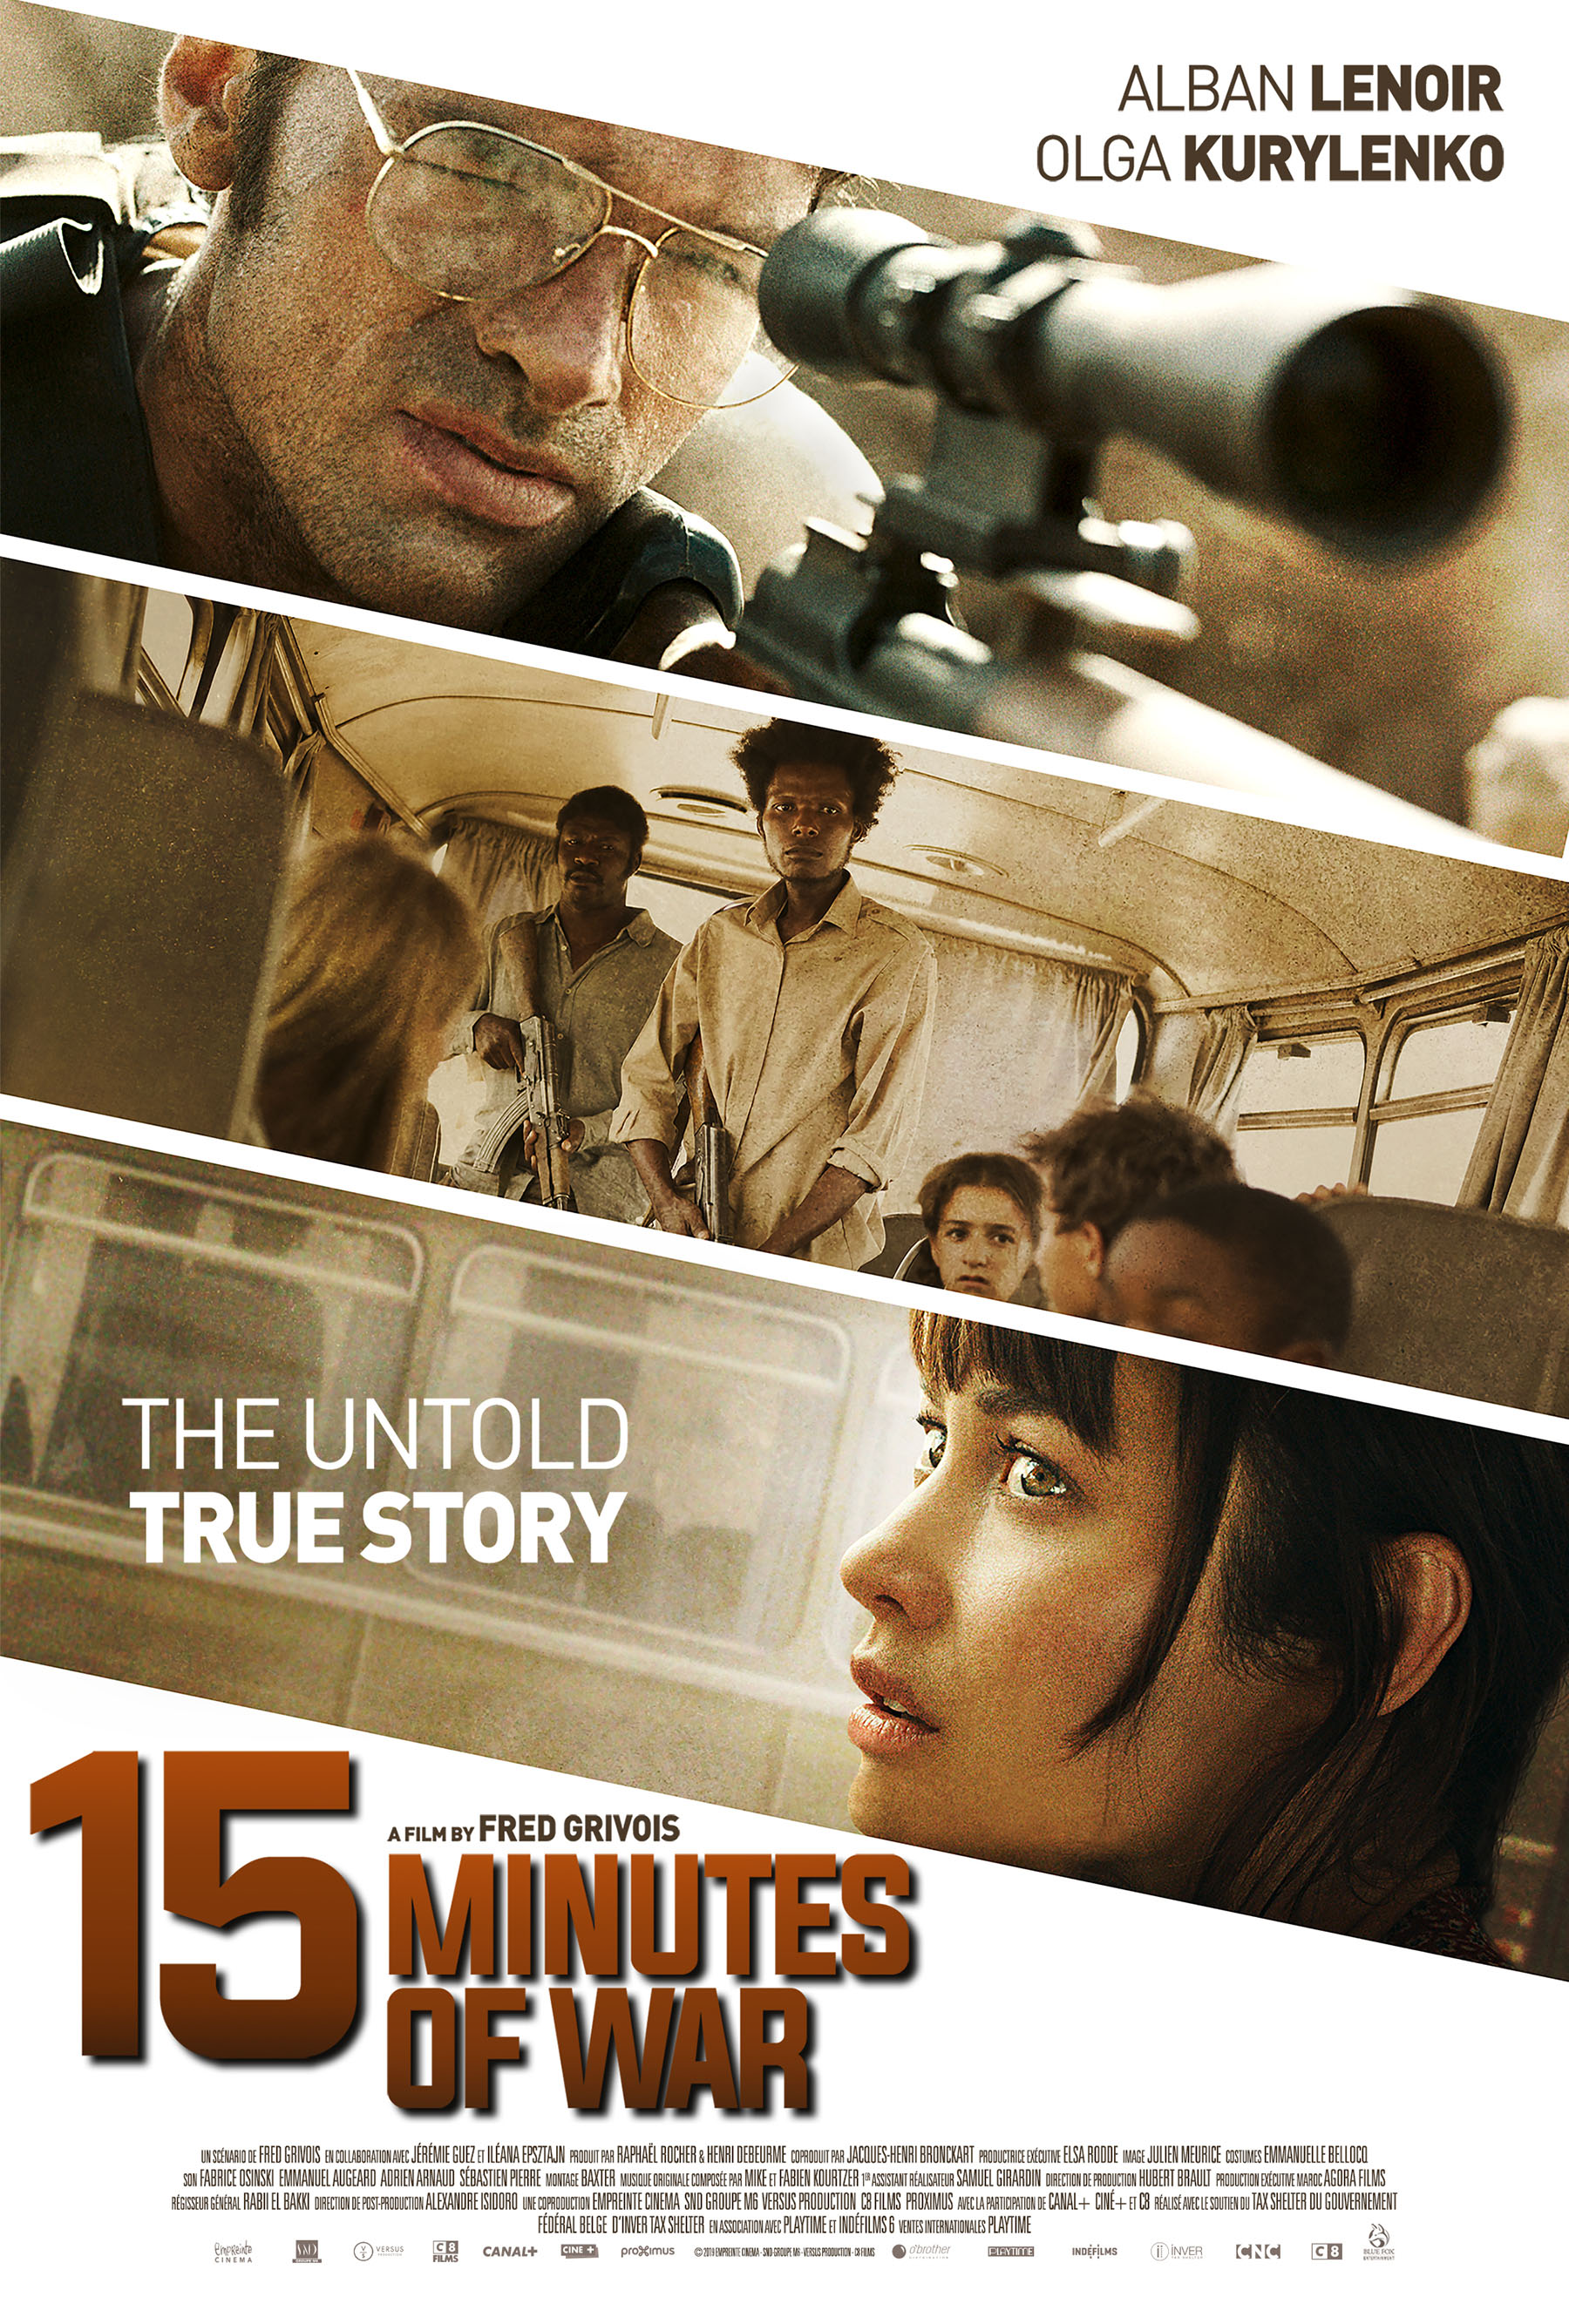 Actress, Olga Kurylenko is a teacher, stuck in a hostage situation in the true-life drama, in 15 MINUTES OF WAR (film).